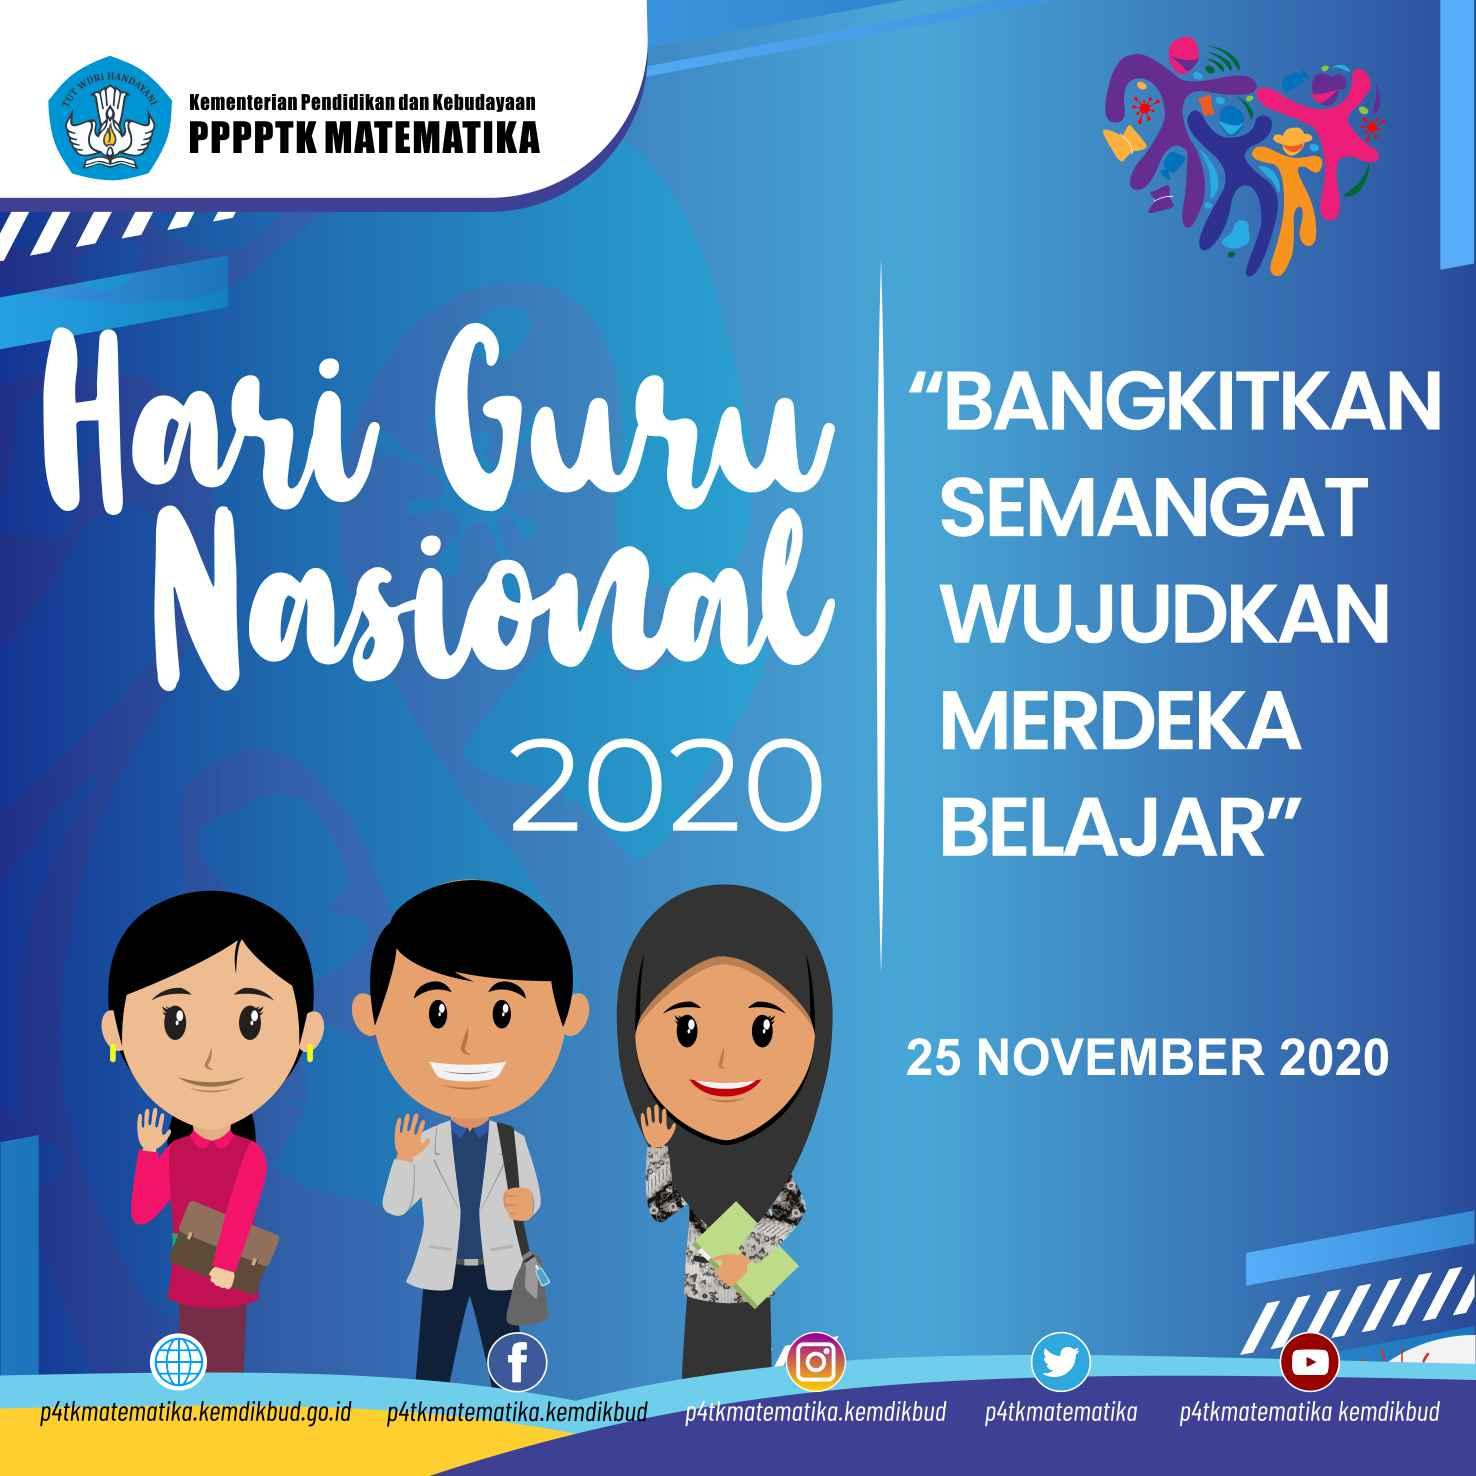 E:\DOWNLOADS\Flayer Hari Guru Nasional 2020_Rev 1.jpg